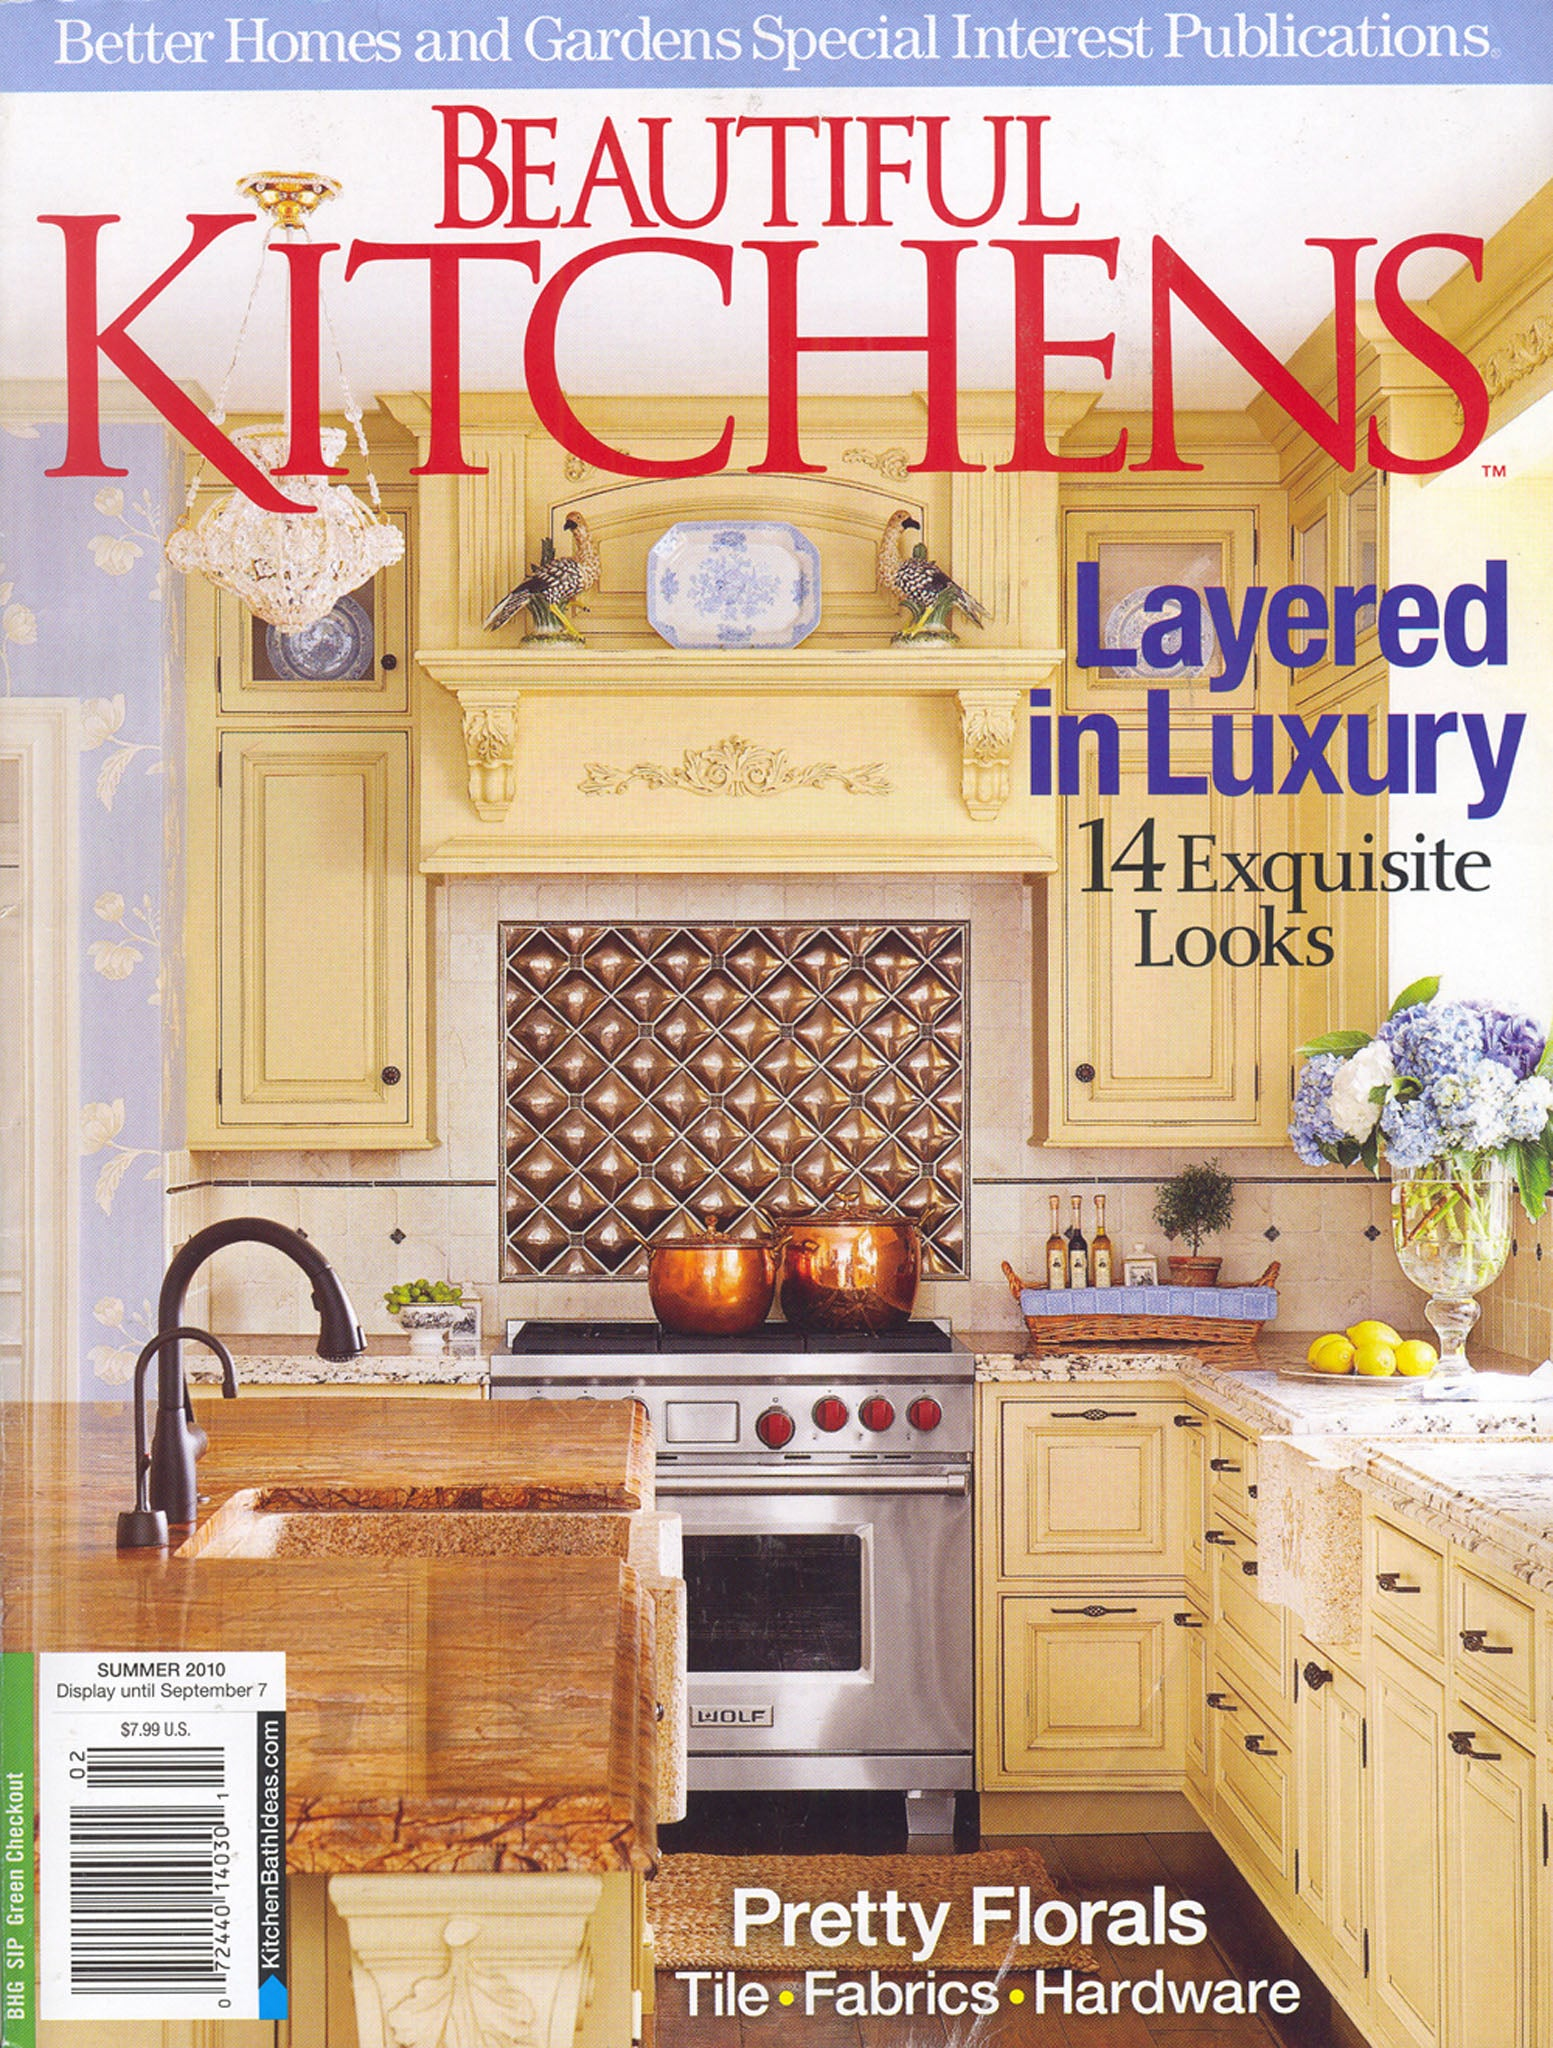 recent posts - Homes And Gardens Kitchens